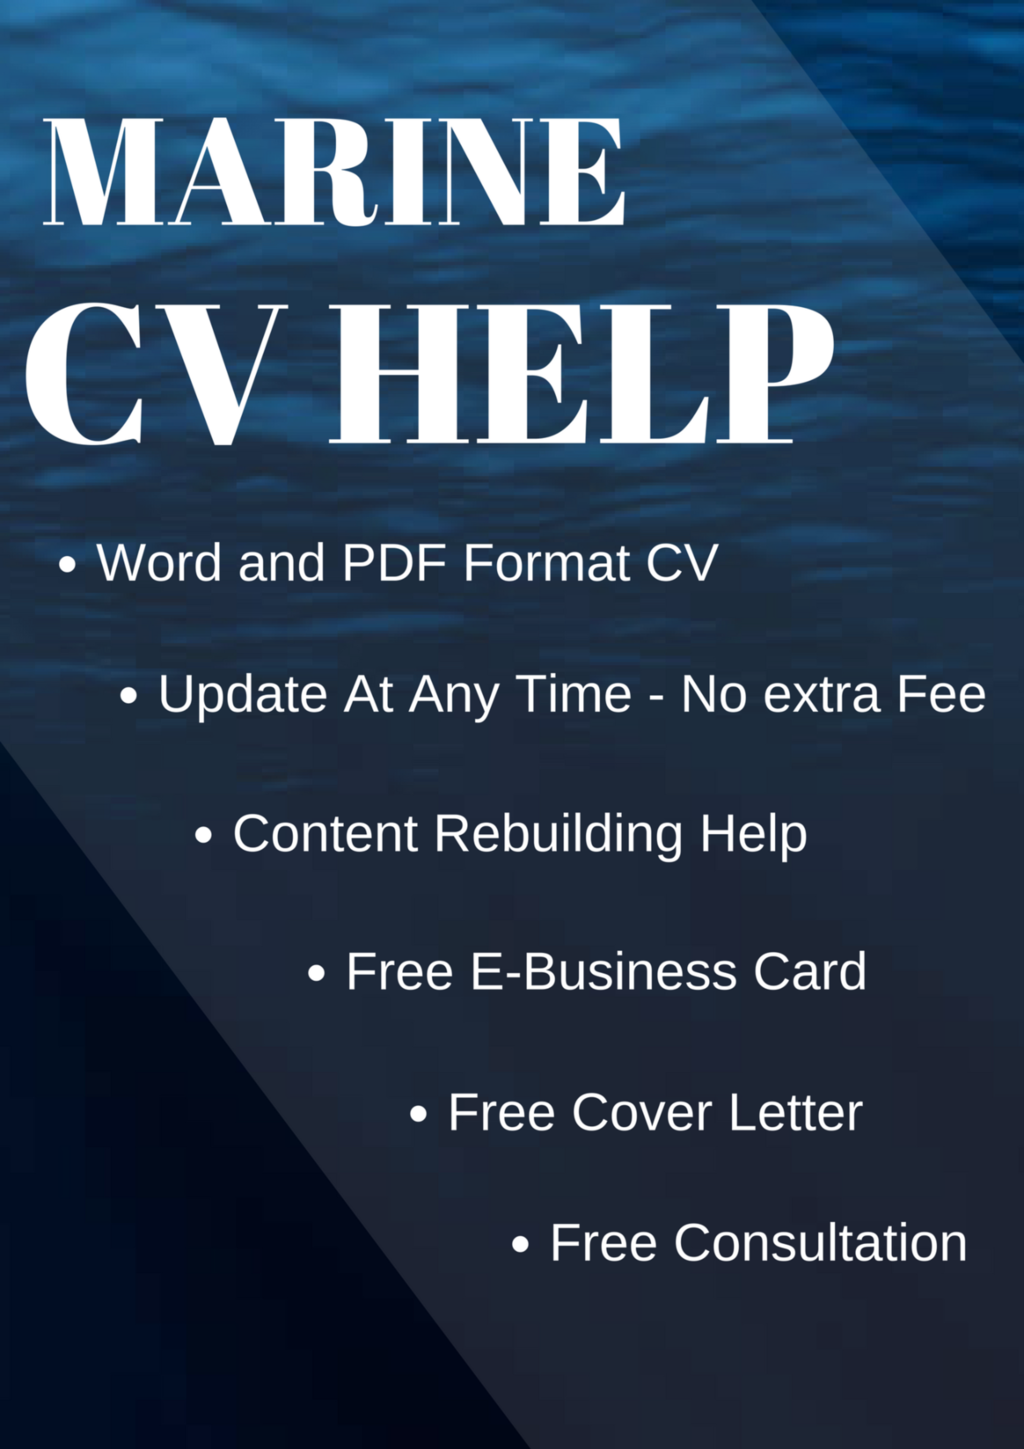 Super Yacht CV and Deluxe Resume Package on Sale - Marine CV Help